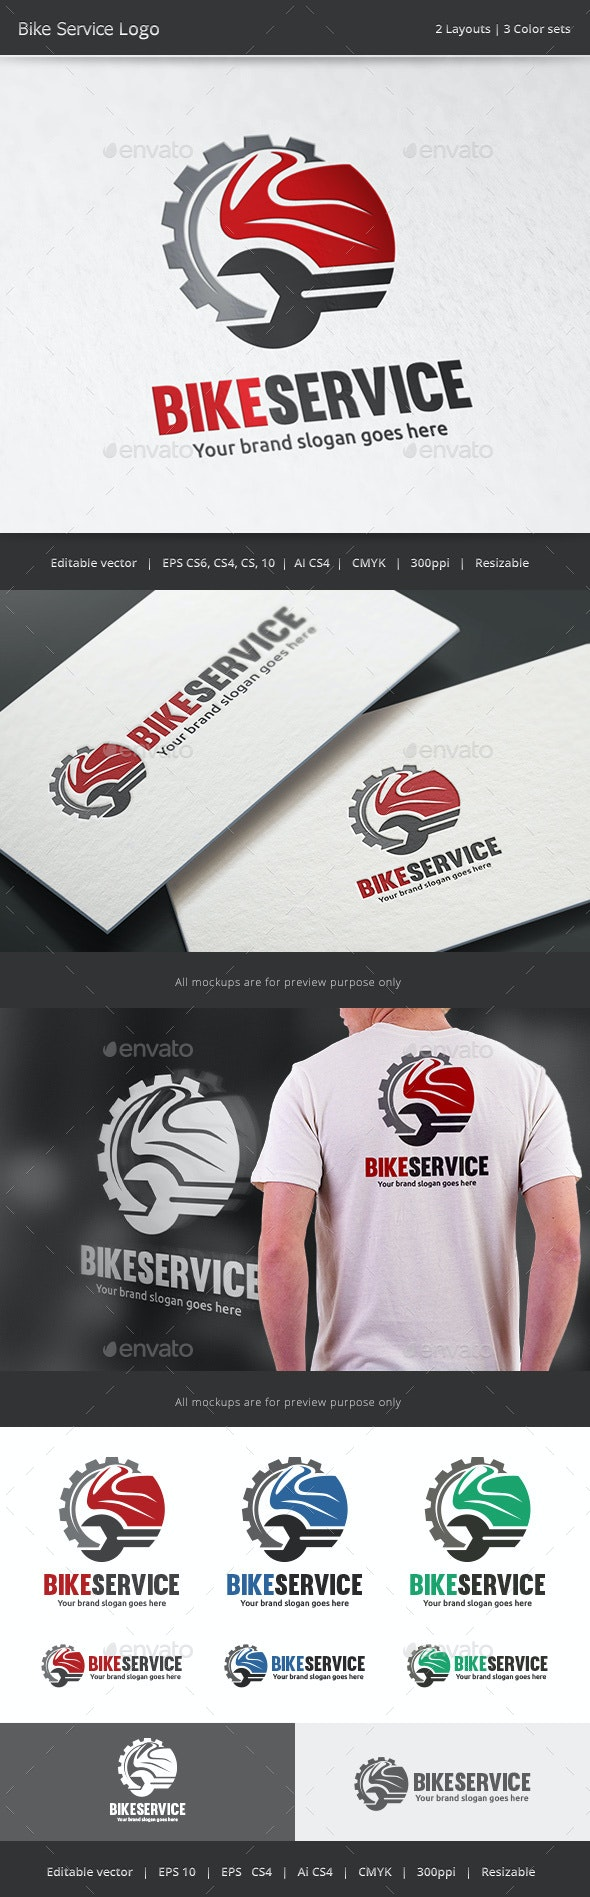 Motorcycle Service Logo - Vector Abstract